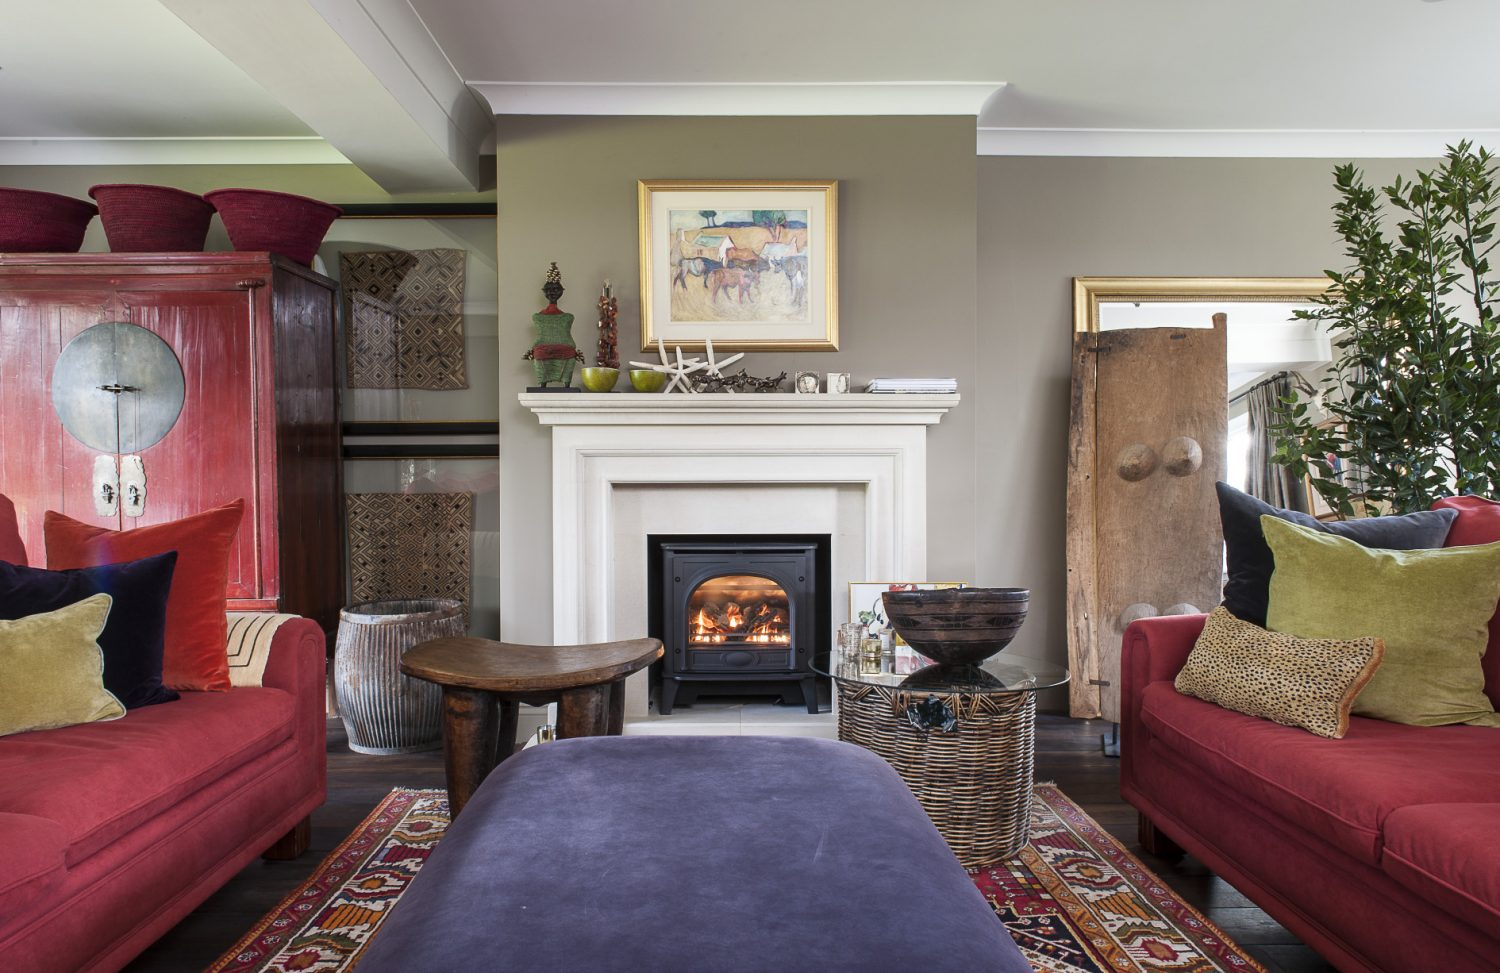 The drawing room is at once spacious and intimate with echoes everywhere of the couple's South African roots